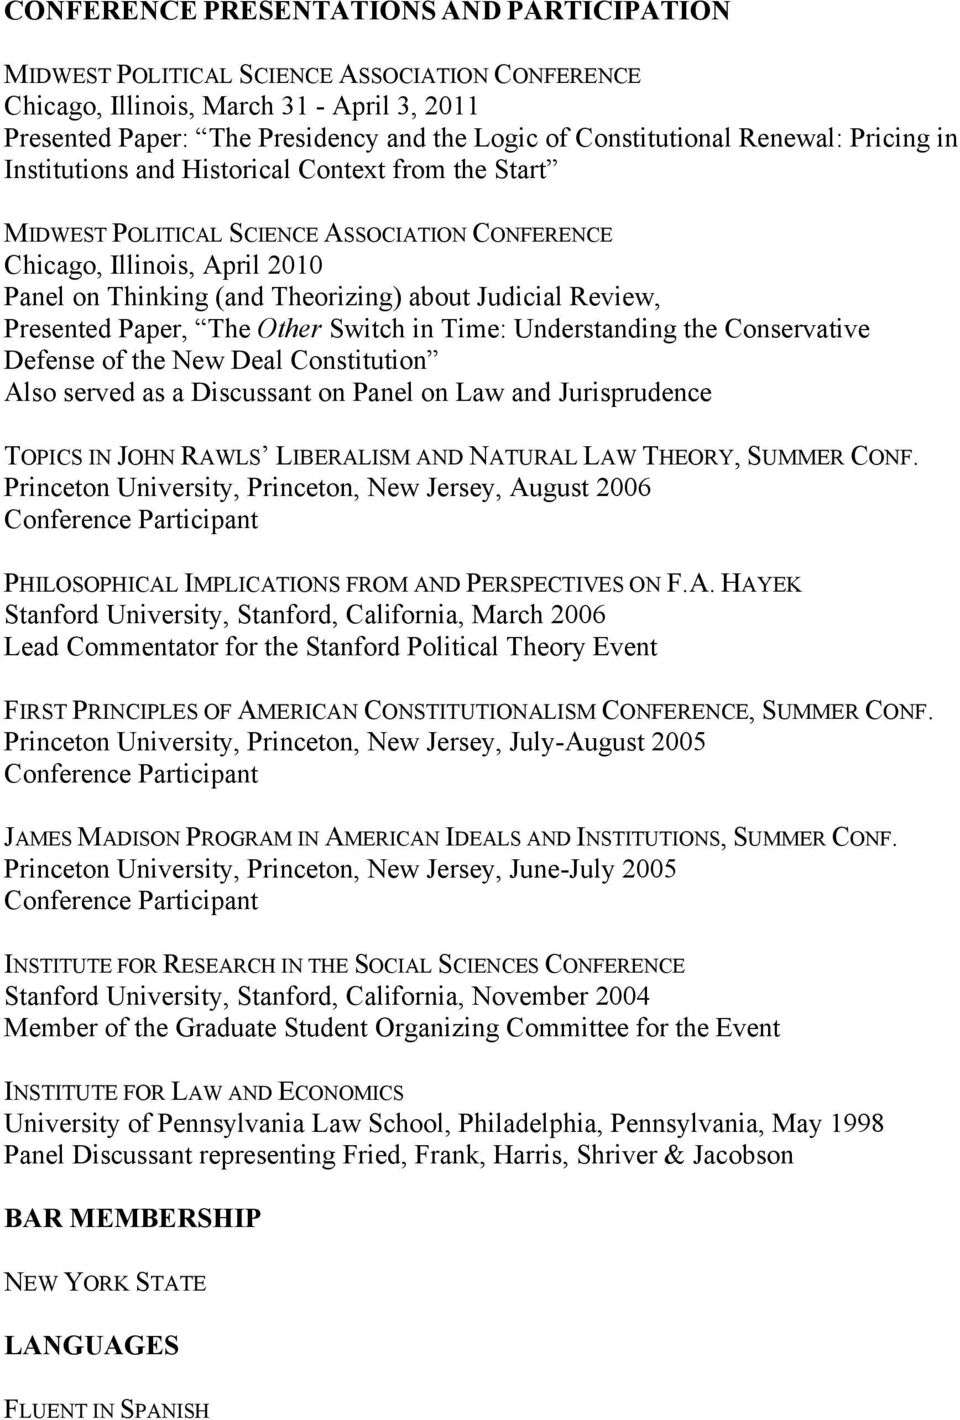 Review, Presented Paper, The Other Switch in Time: Understanding the Conservative Defense of the New Deal Constitution Also served as a Discussant on Panel on Law and Jurisprudence TOPICS IN JOHN